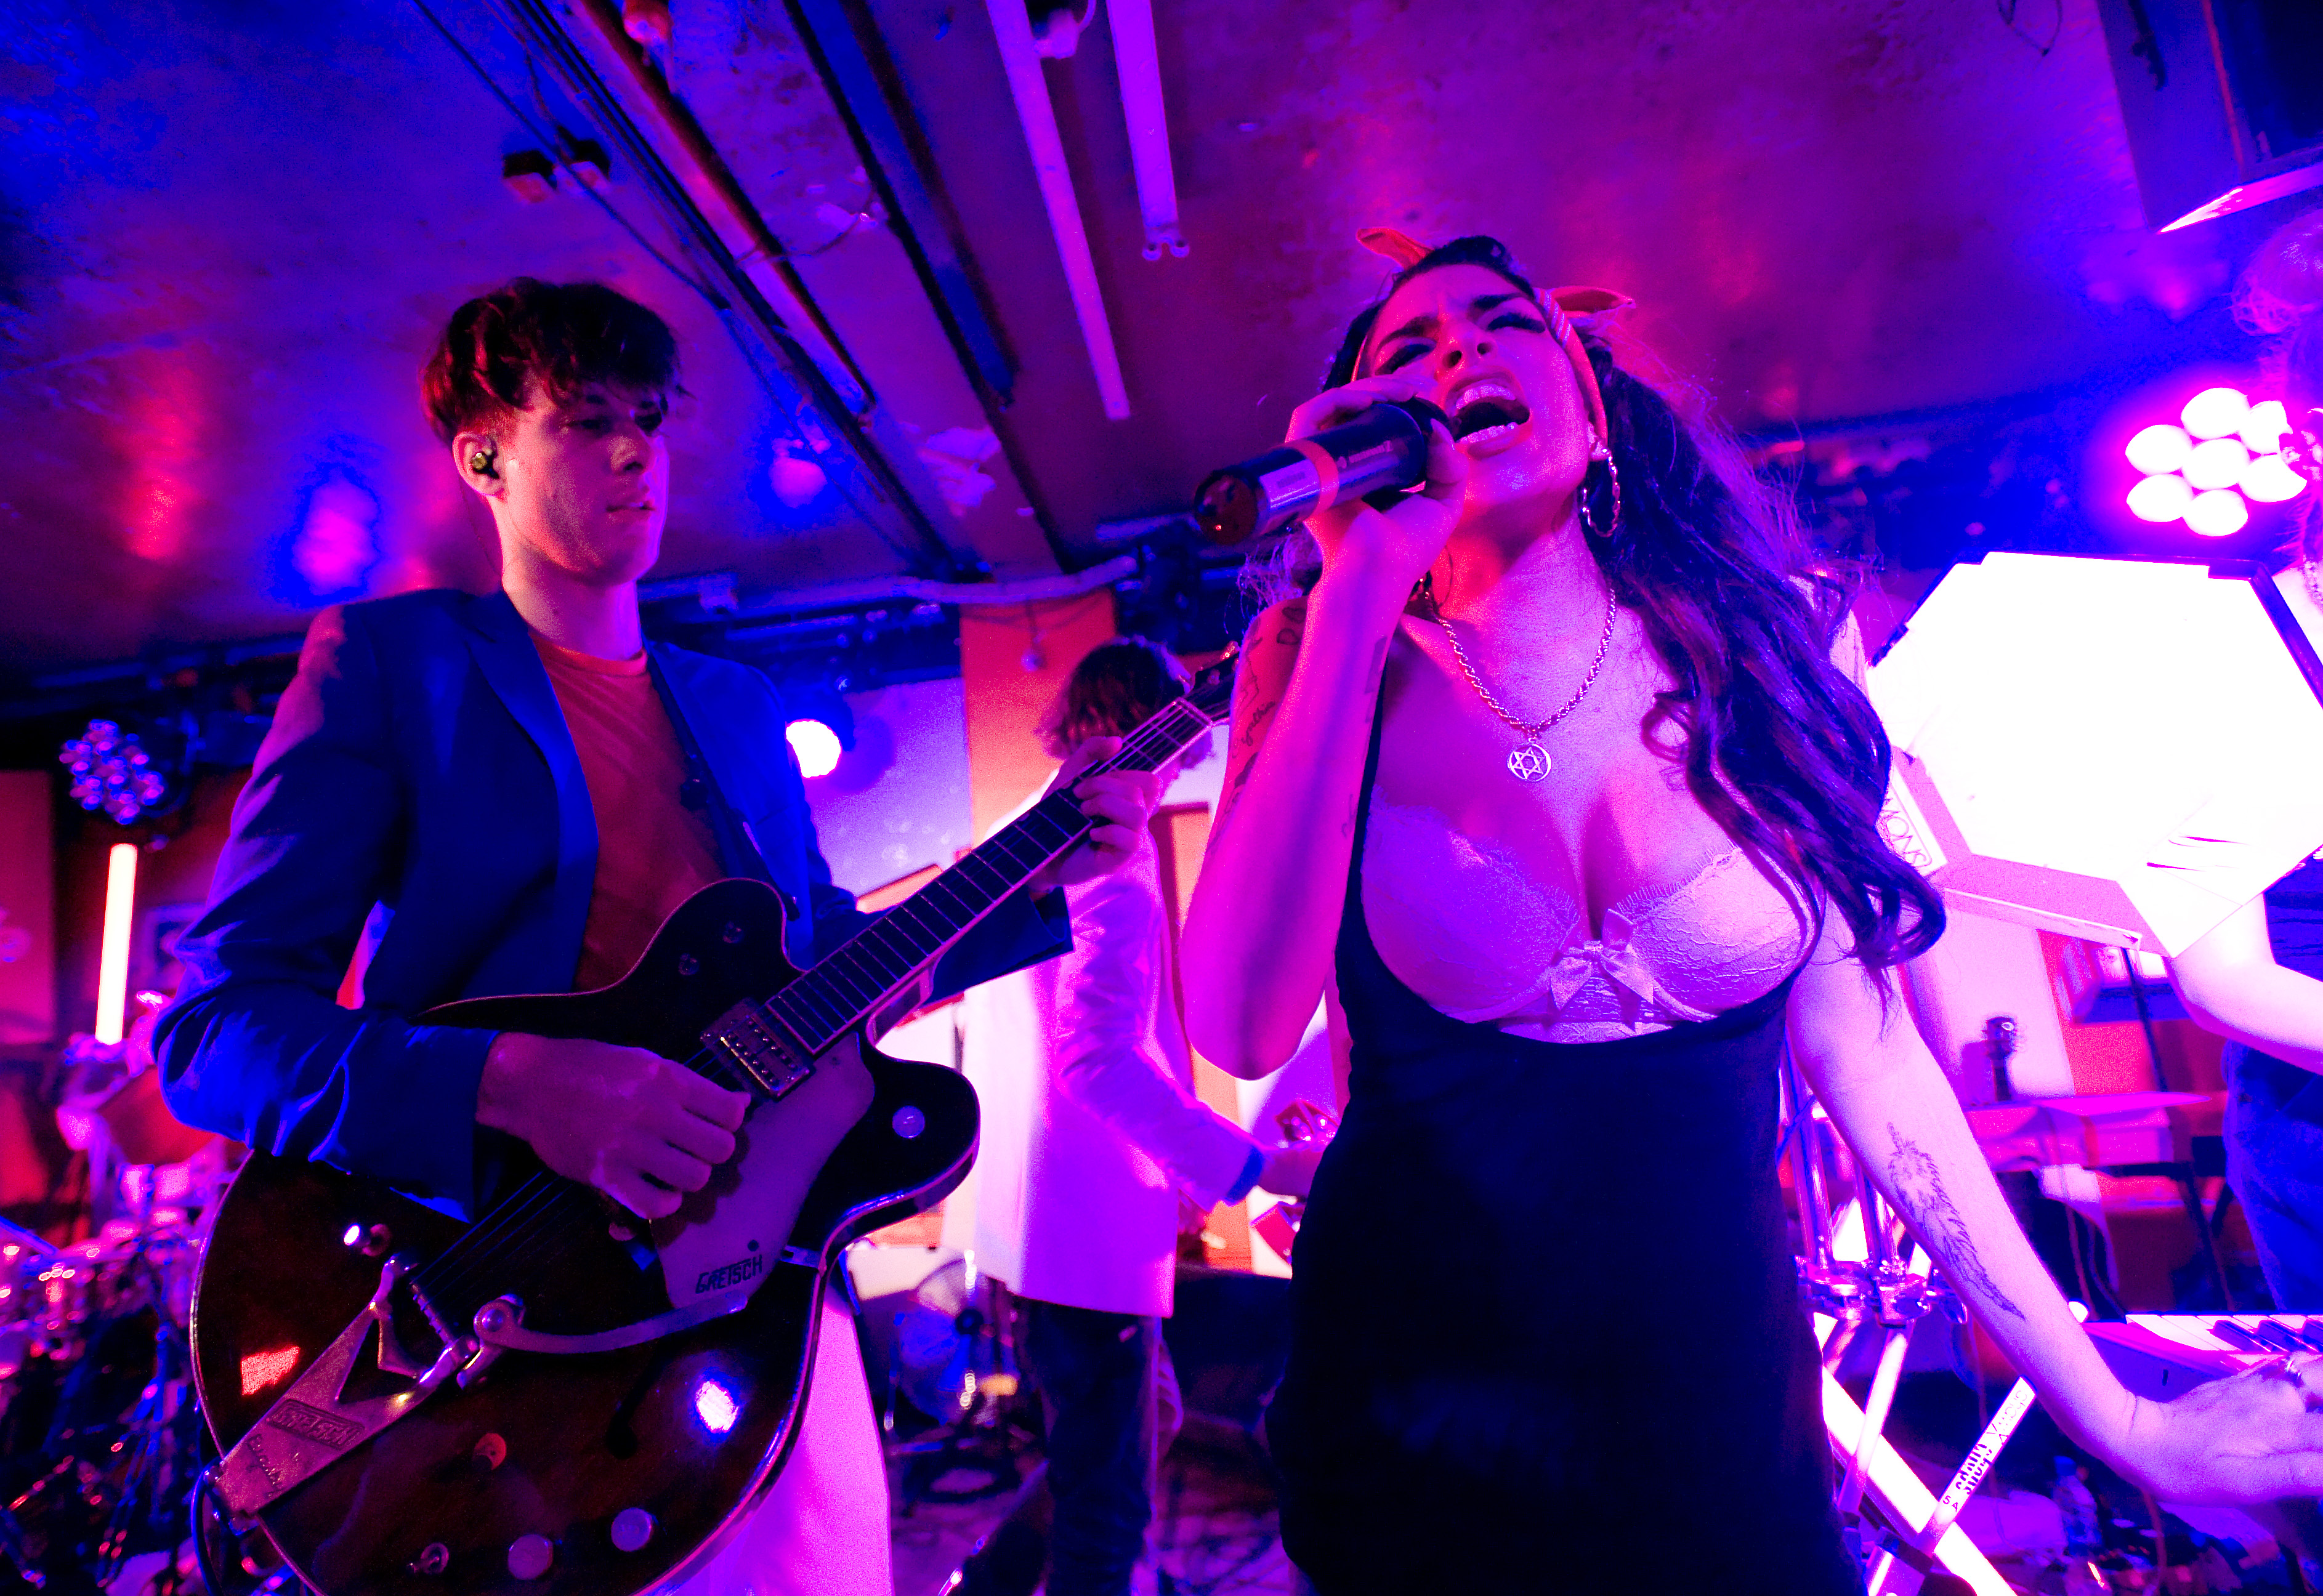 Amy Winehouse makes a surprise appearance as she performs with Mark Ronson (L) at the 100 Club on July 6, 2010 in London, England.